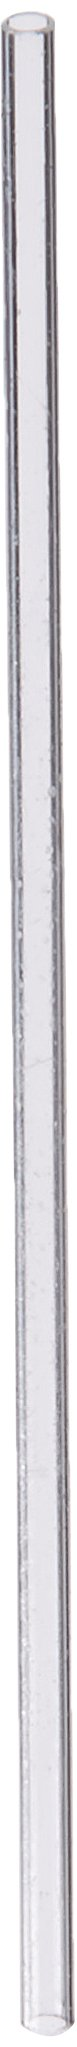 Drummond Scientific 1-000-3200-H  Microhematocrit Tubes, Heparinized, 32mm Length, 0.8mm OD, 0.1mm Wall Thickness (Pack of 500)